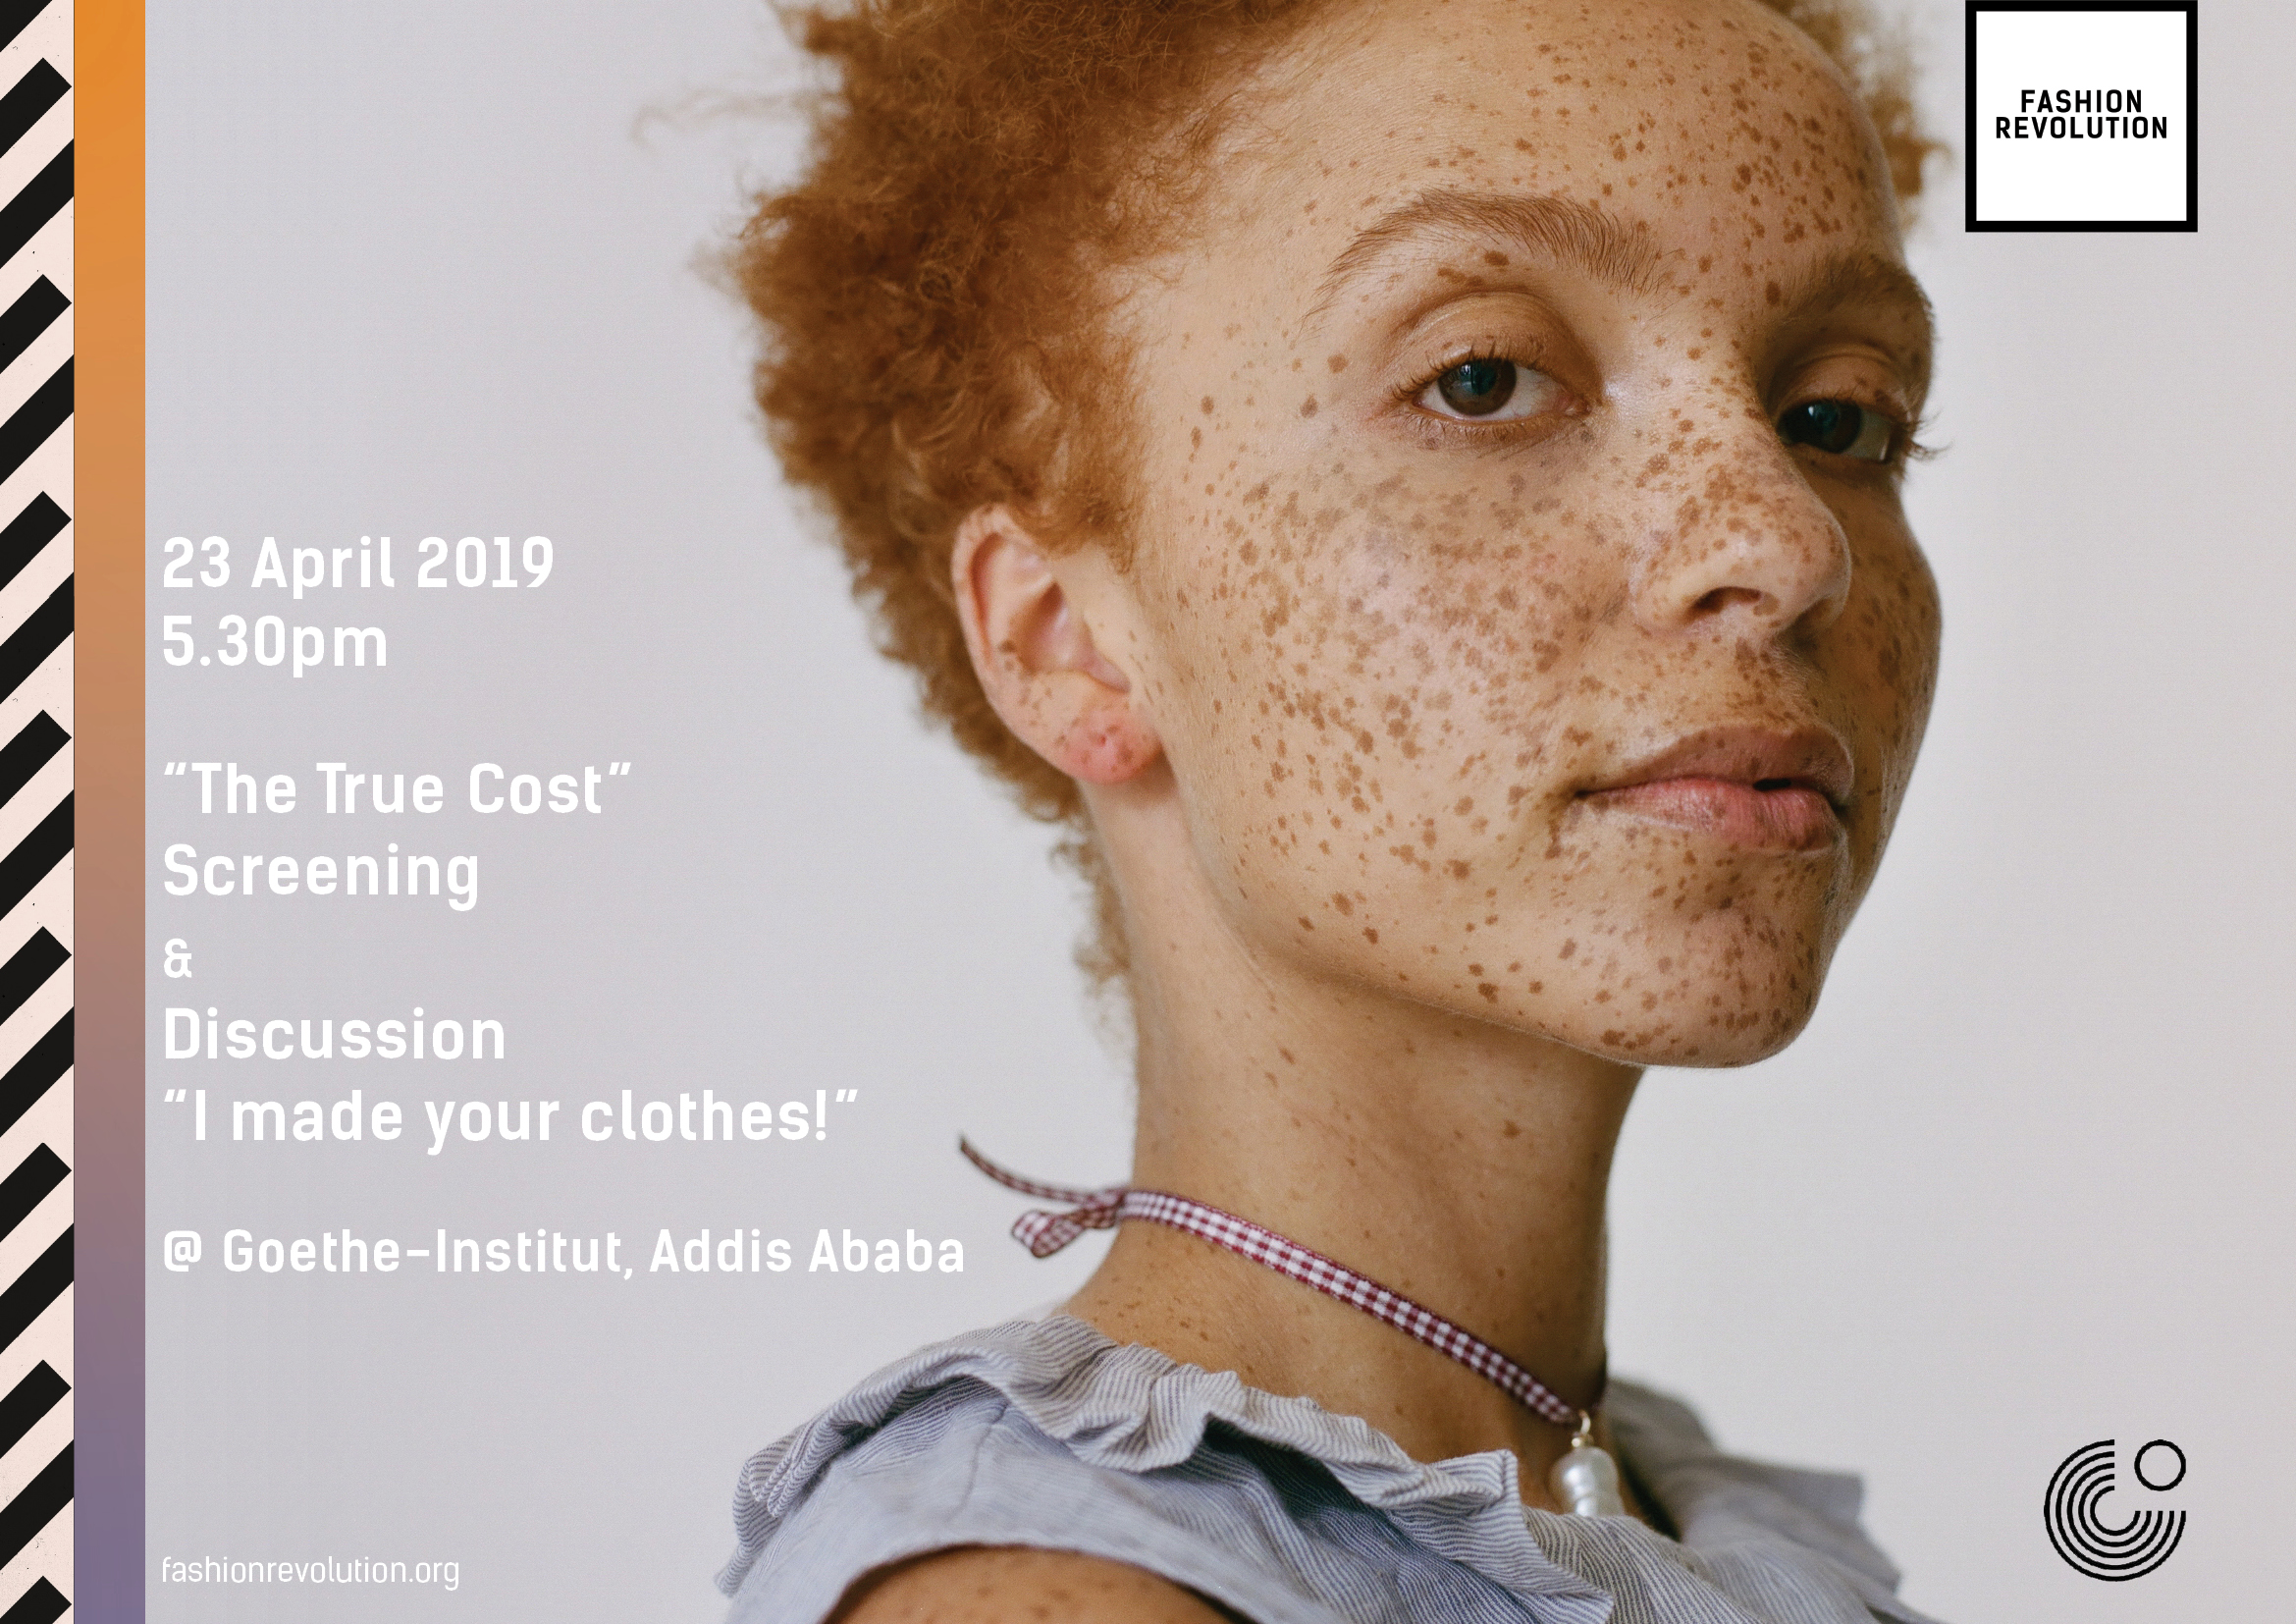 """The True Cost"" Screening & Discussion Round ""I made your clothes"""